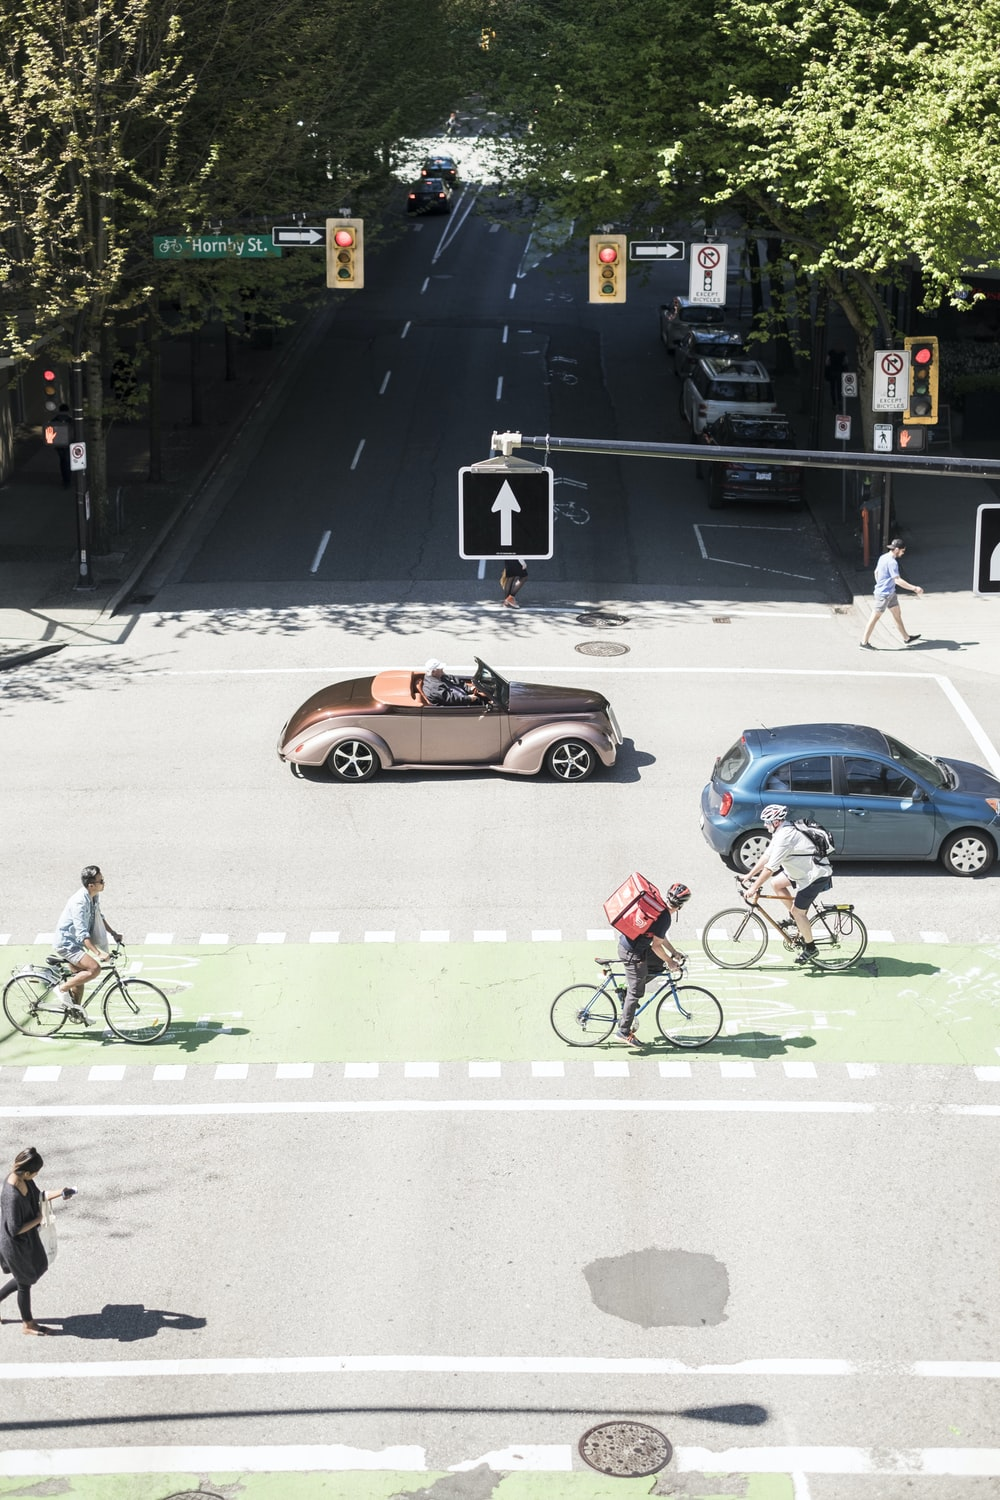 vehicles and bikes on road during daytime